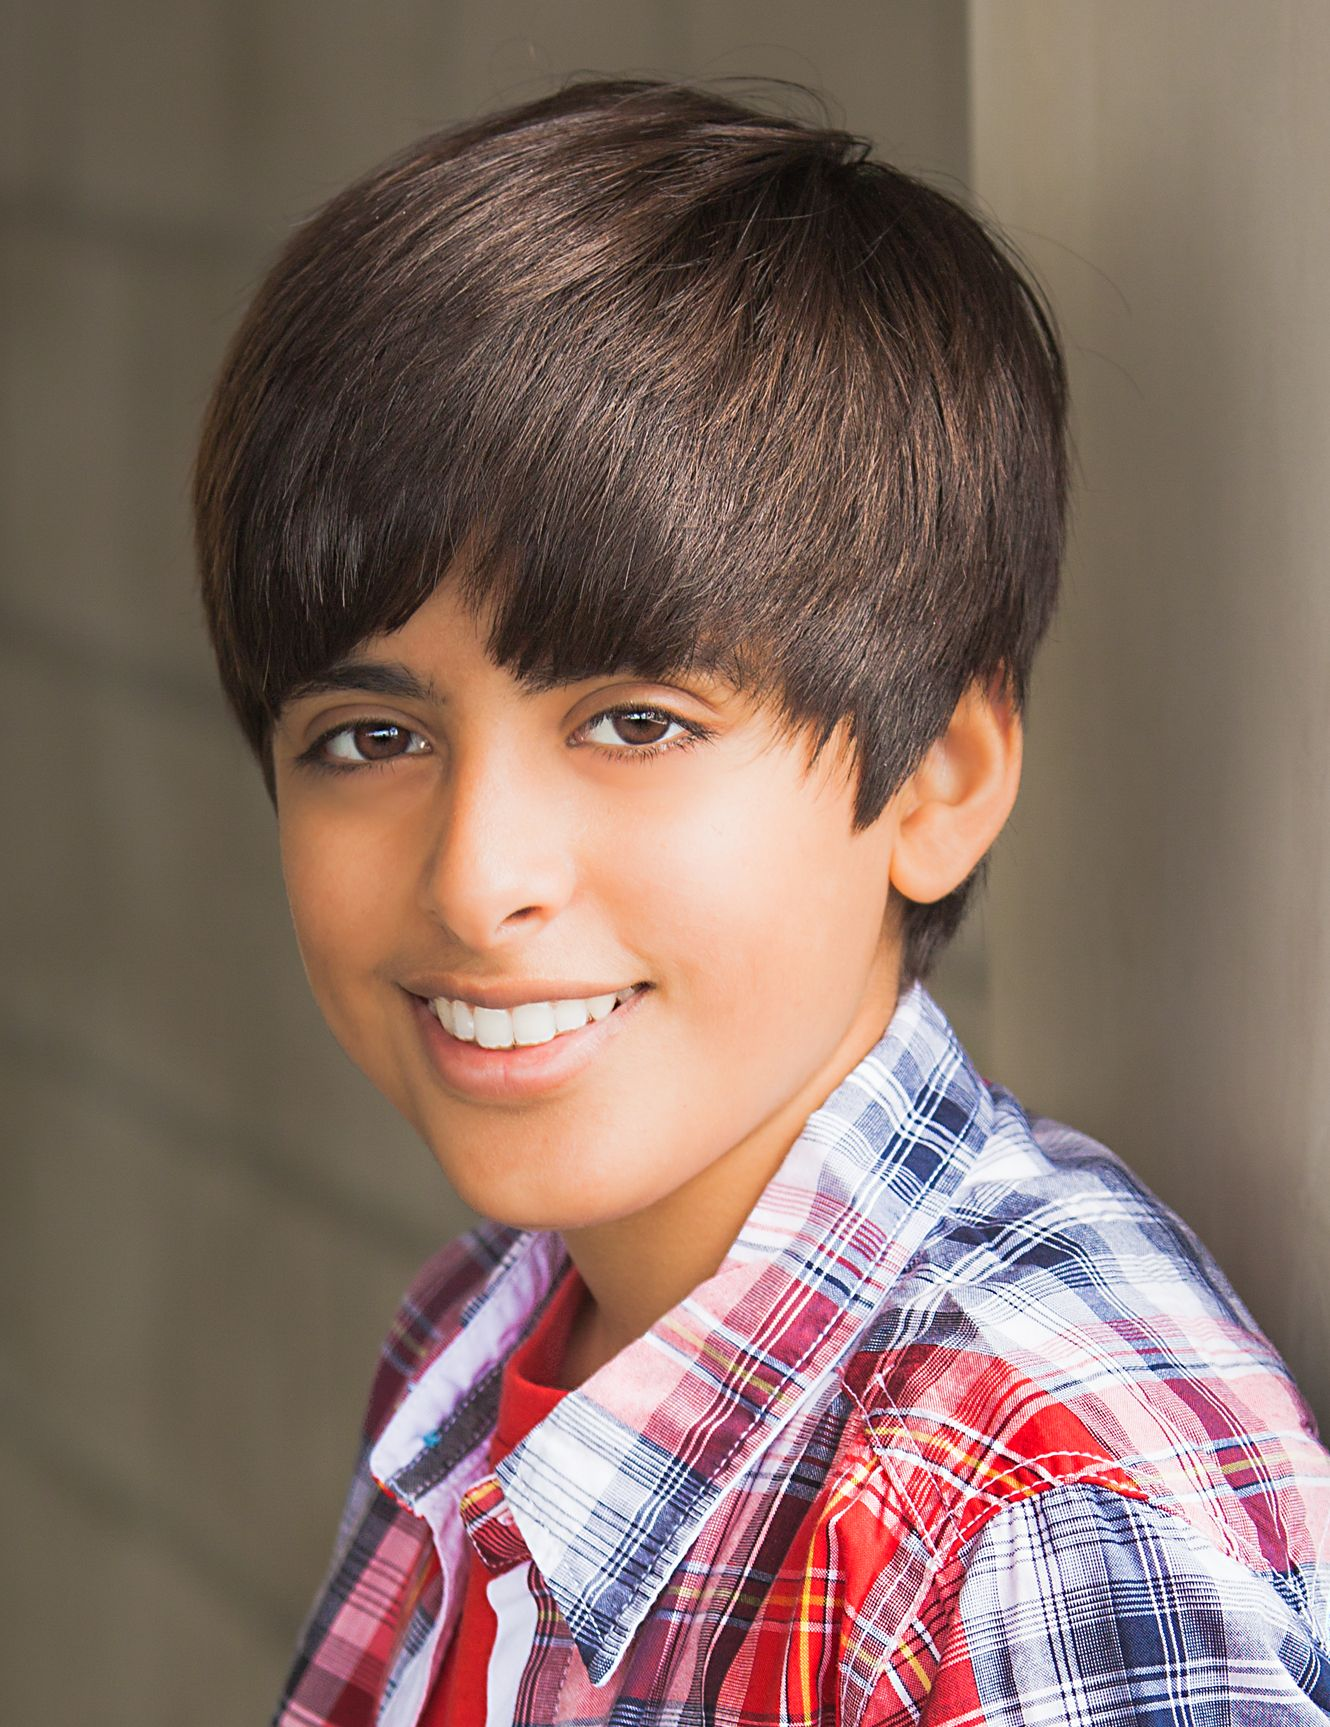 Karan Brar  originally from Redmond  Washington  can be seen as    Karan Brar 2013